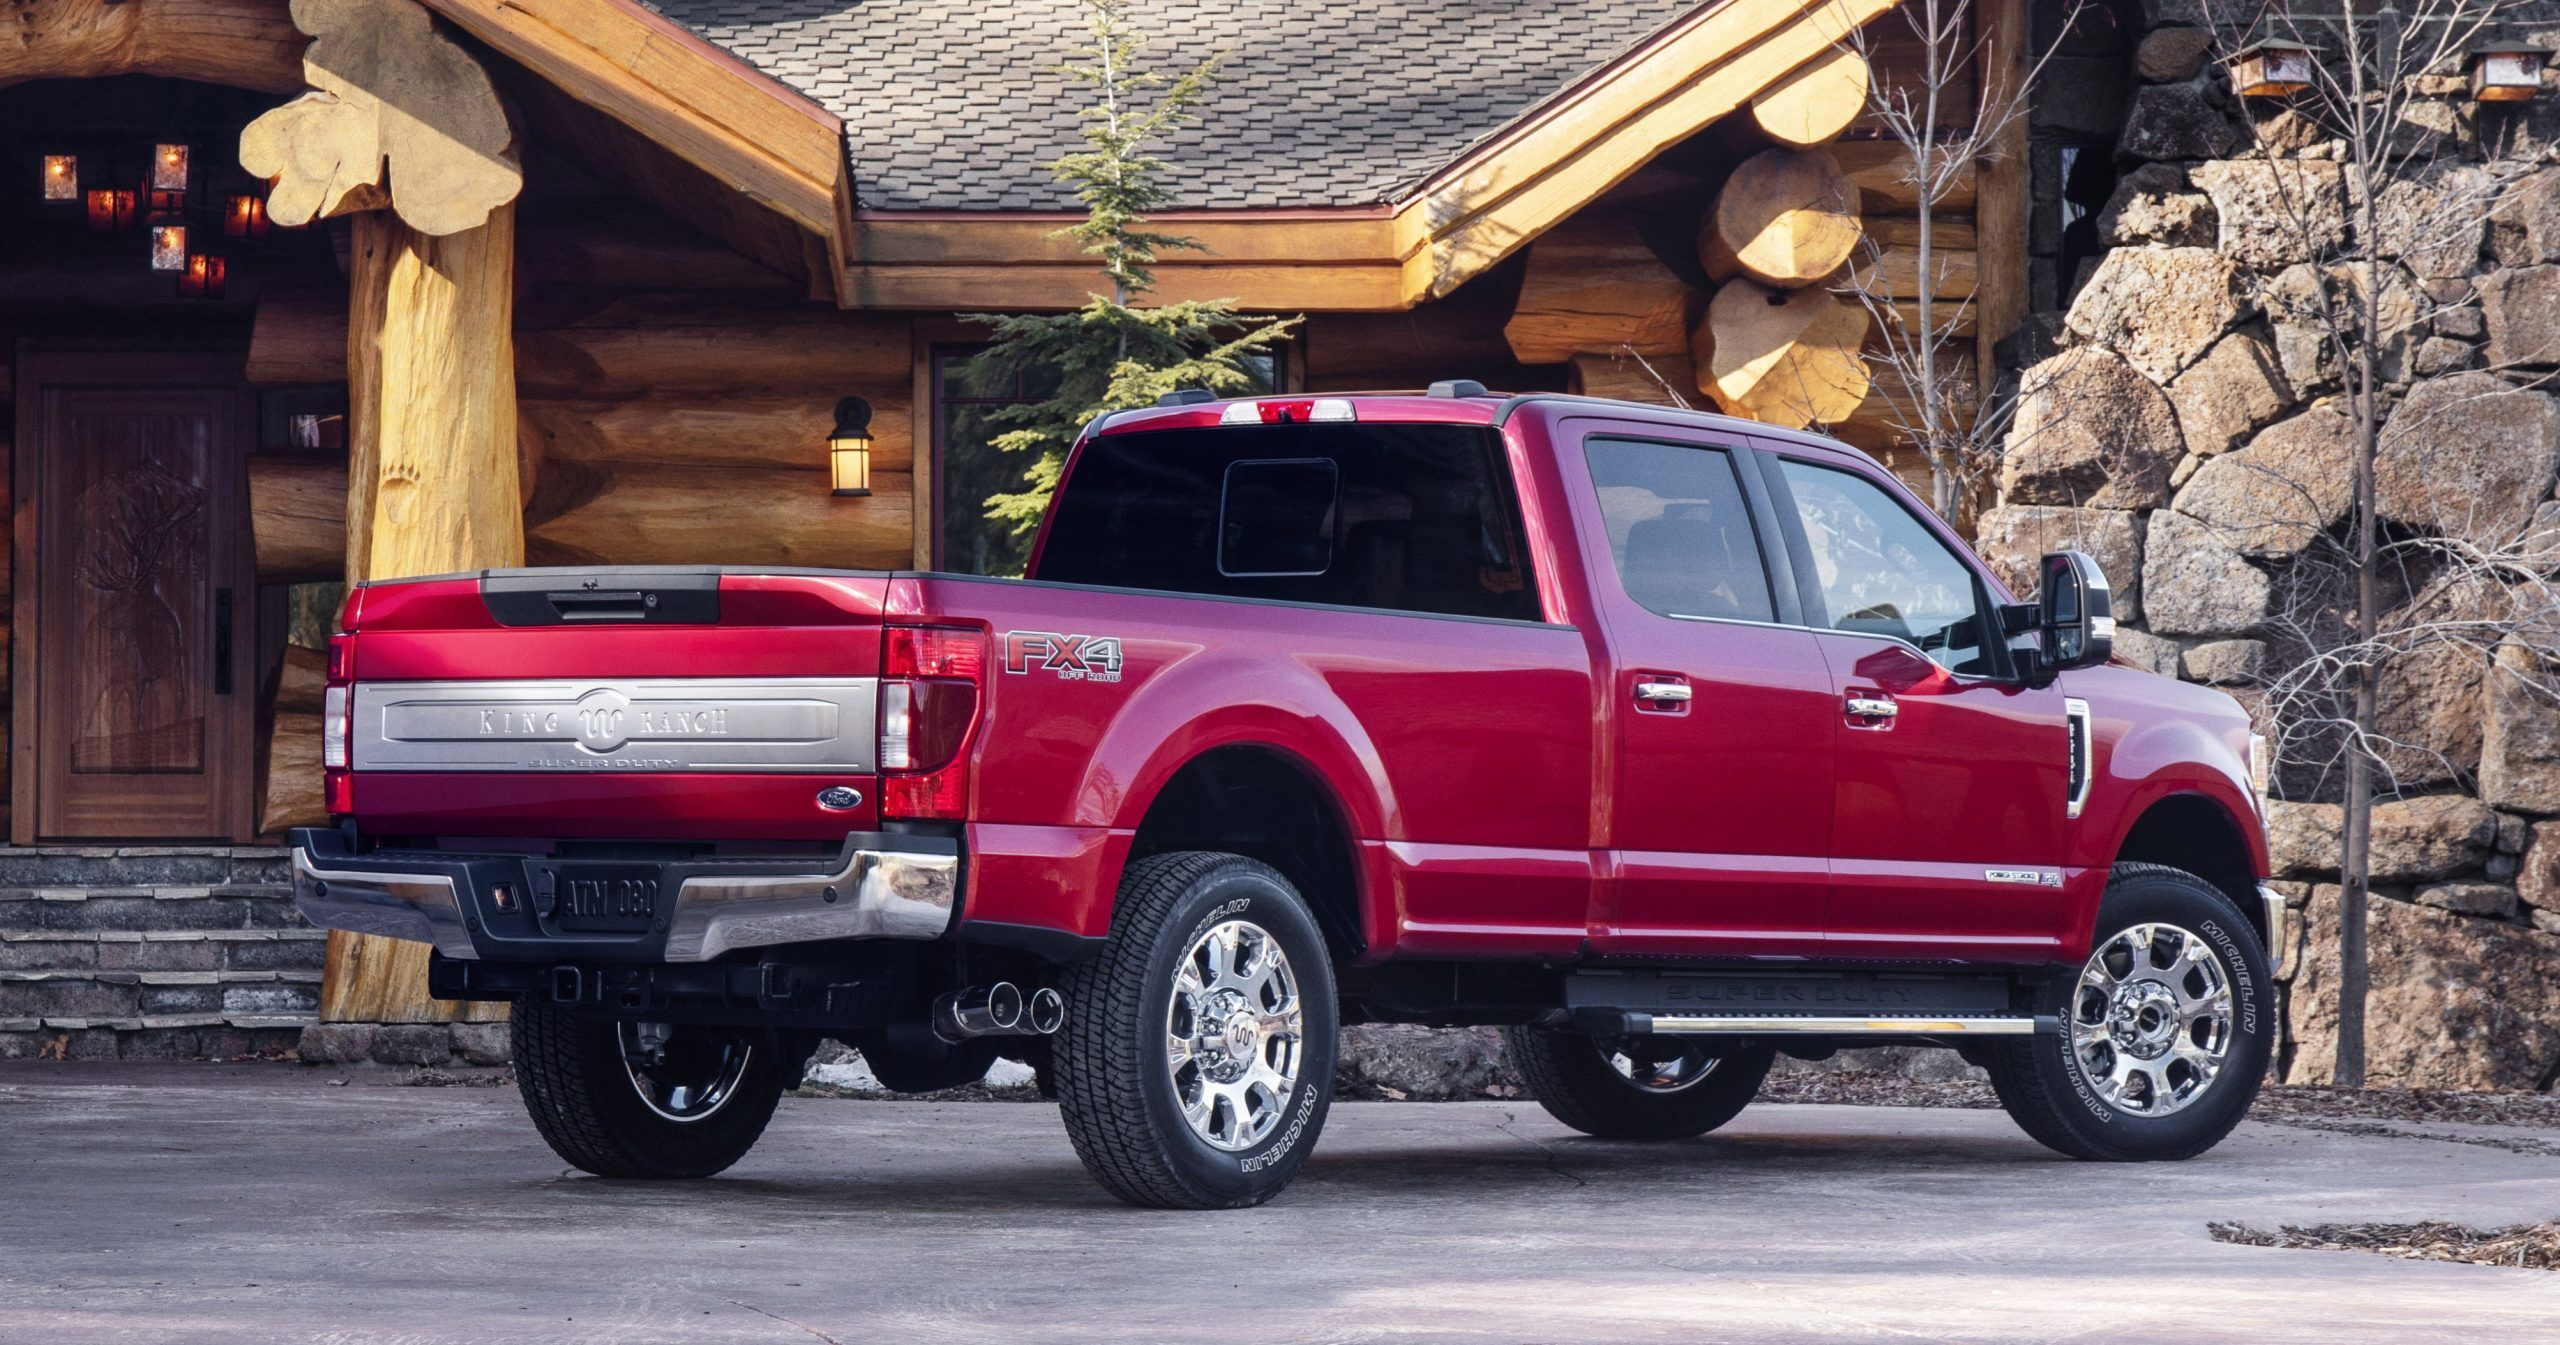 2021 Spy Shots Ford F350 Diesel New Review